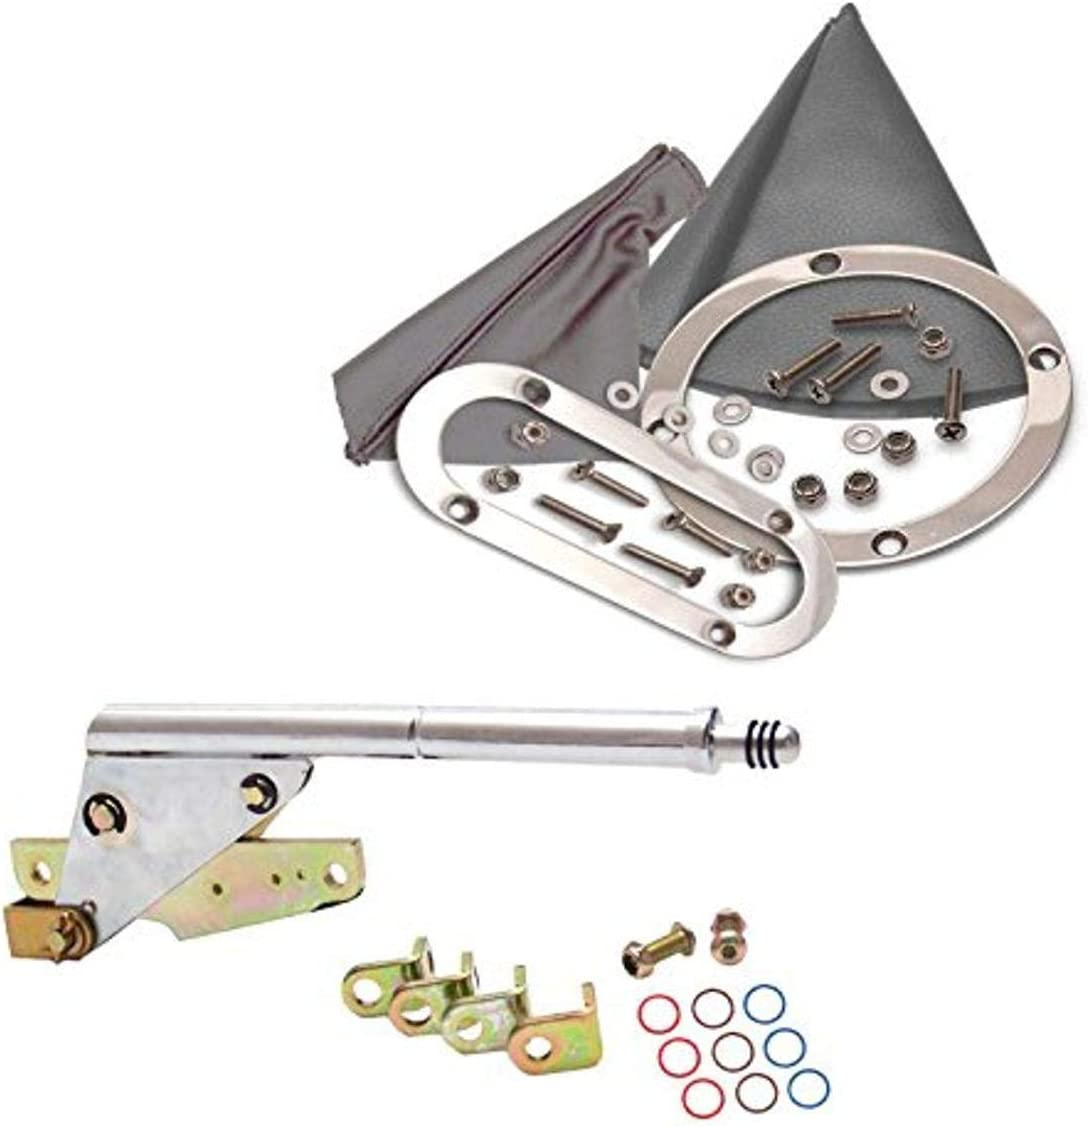 American Shifter 436843 Kit 2004R Brake Swan 23 Cable E Outlet Oakland Mall sale feature